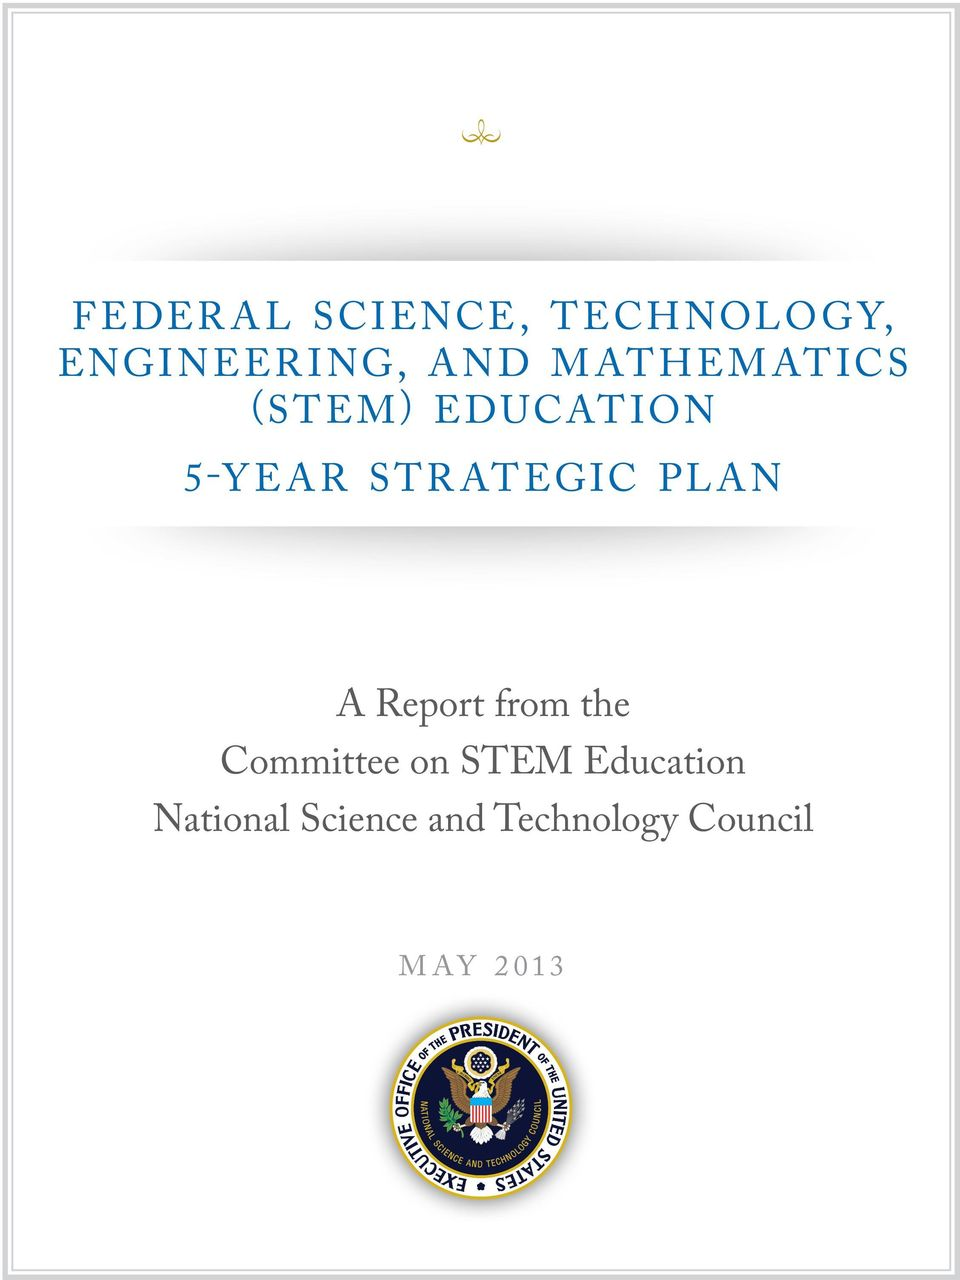 Report from the Committee on STEM Education